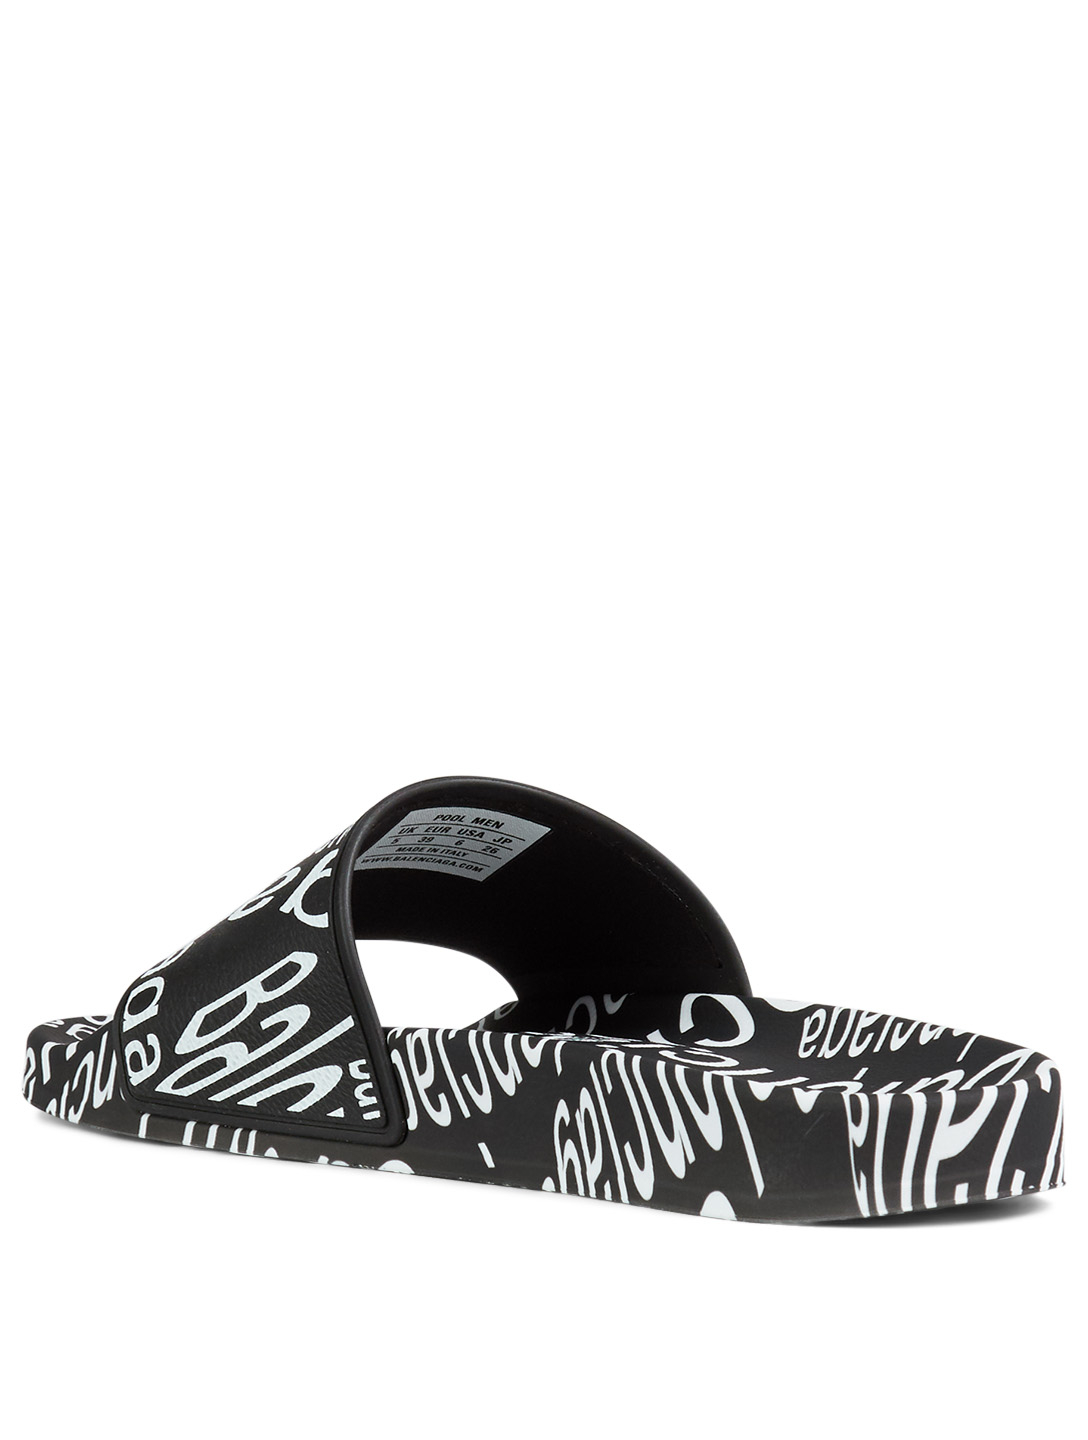 BALENCIAGA Logo Wave Pool Slide Sandals Men's Black